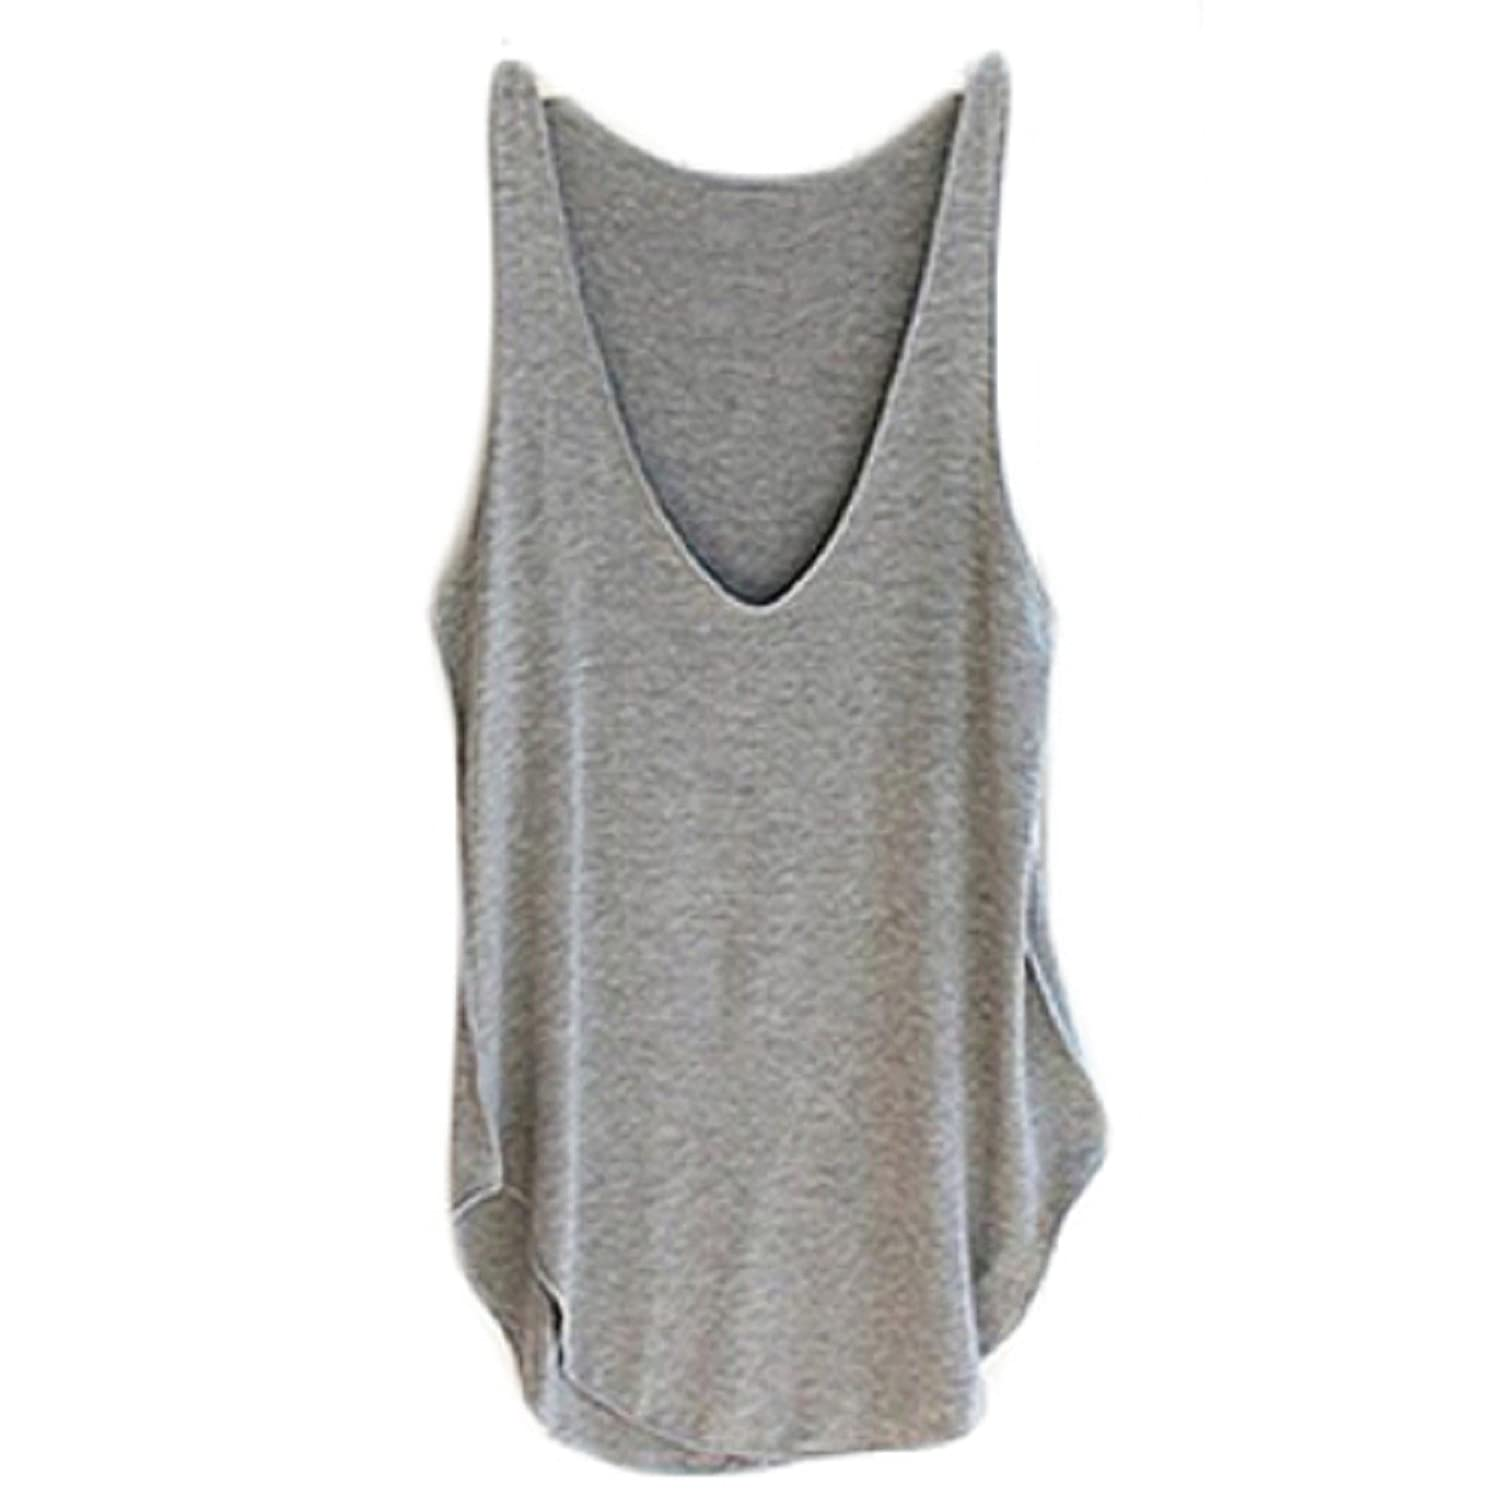 Vovotrade Fashion Summer Woman Lady Sleeveless V-Neck Candy Vest Loose Tank T-shirt